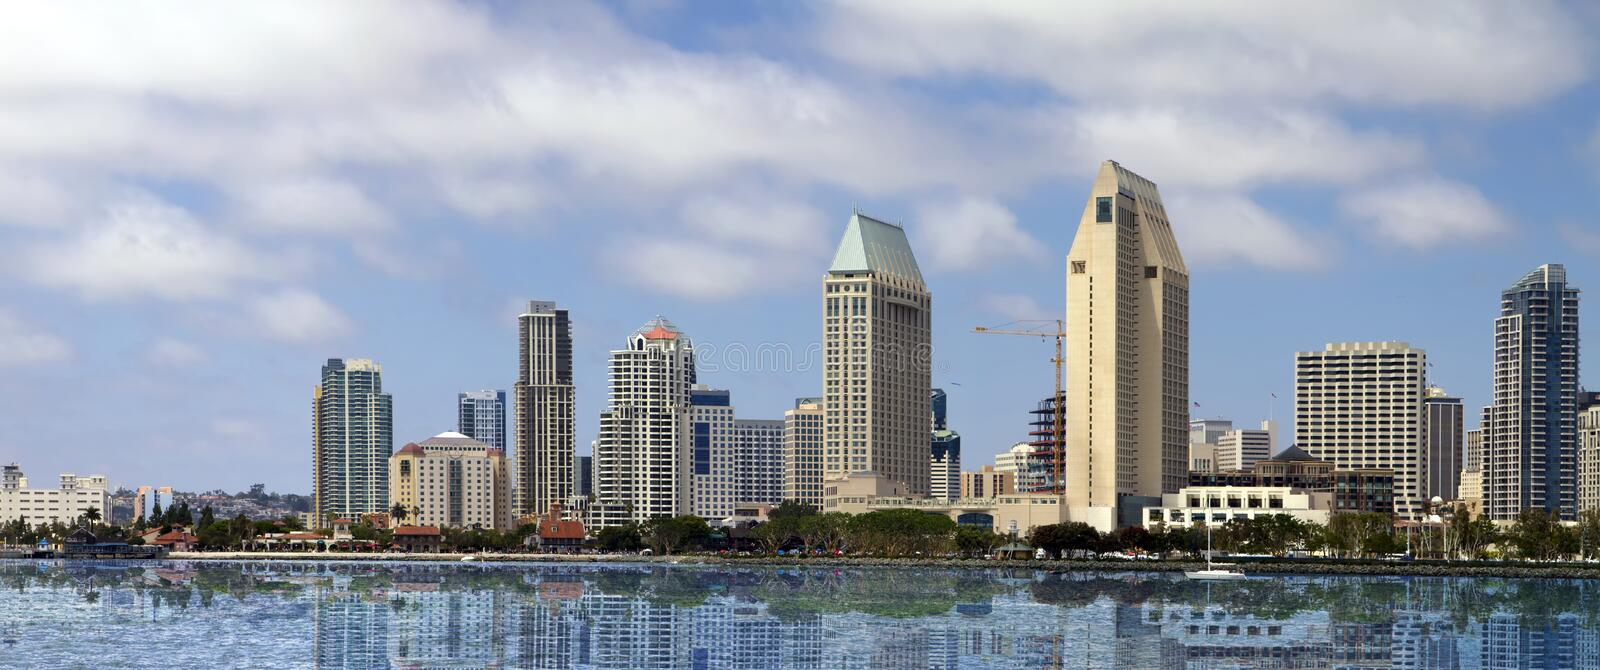 Downtown San Diego Seaside Cityscape. Downtown San Diego waterfront cityscape panorama on a late summer afternoon with reflections of the city in the bay waters stock photo